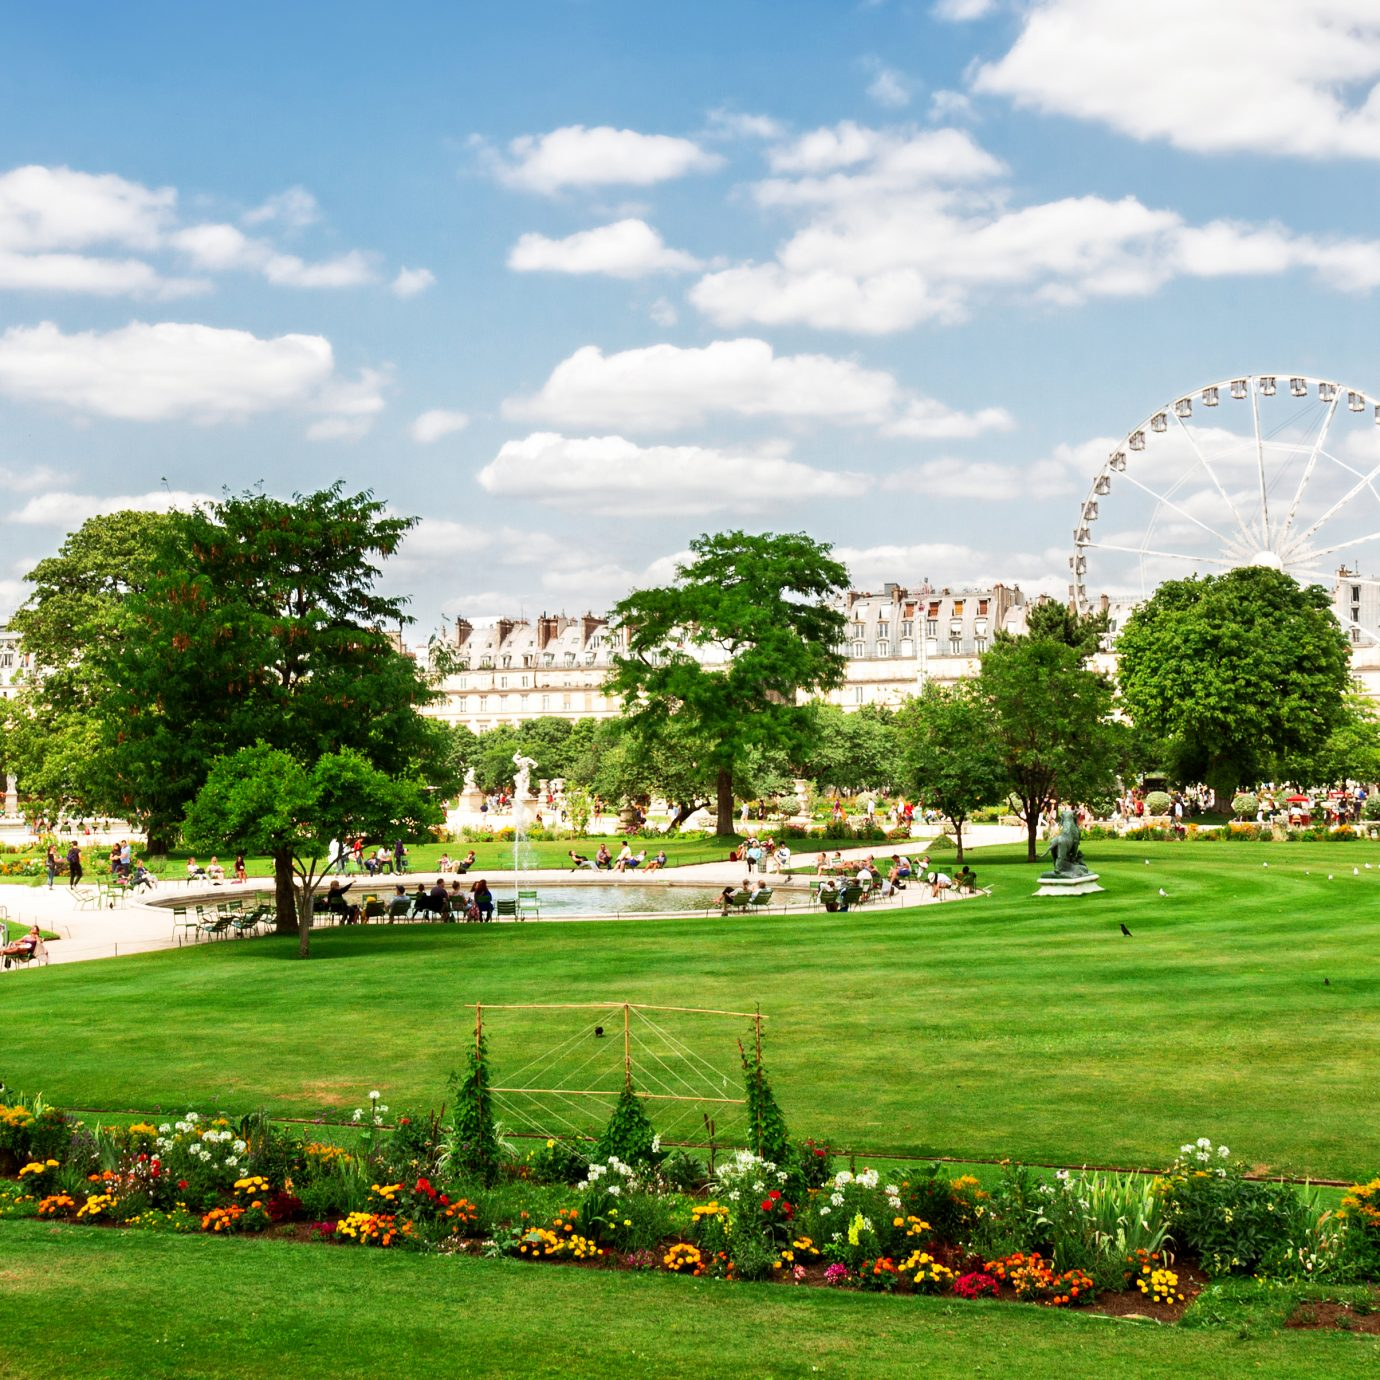 Tuileries garden at summer day, green lawn and blue sky with clouds, Paris France